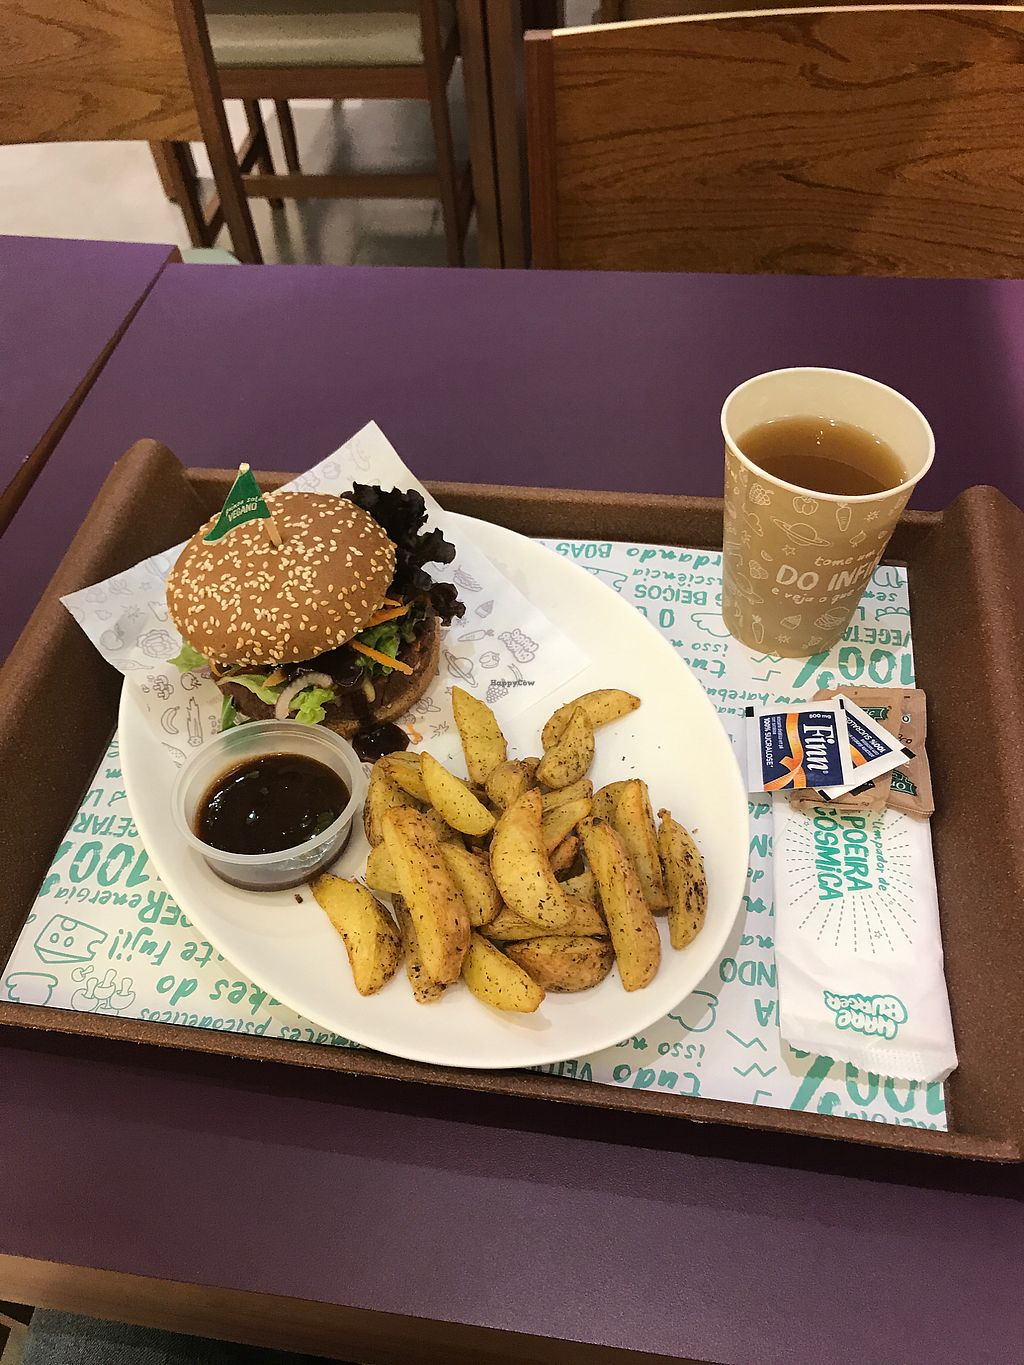 """Photo of Hareburger - Botafogo  by <a href=""""/members/profile/JeremyIrvine"""">JeremyIrvine</a> <br/>yummy bean burger <br/> August 17, 2017  - <a href='/contact/abuse/image/79582/293778'>Report</a>"""